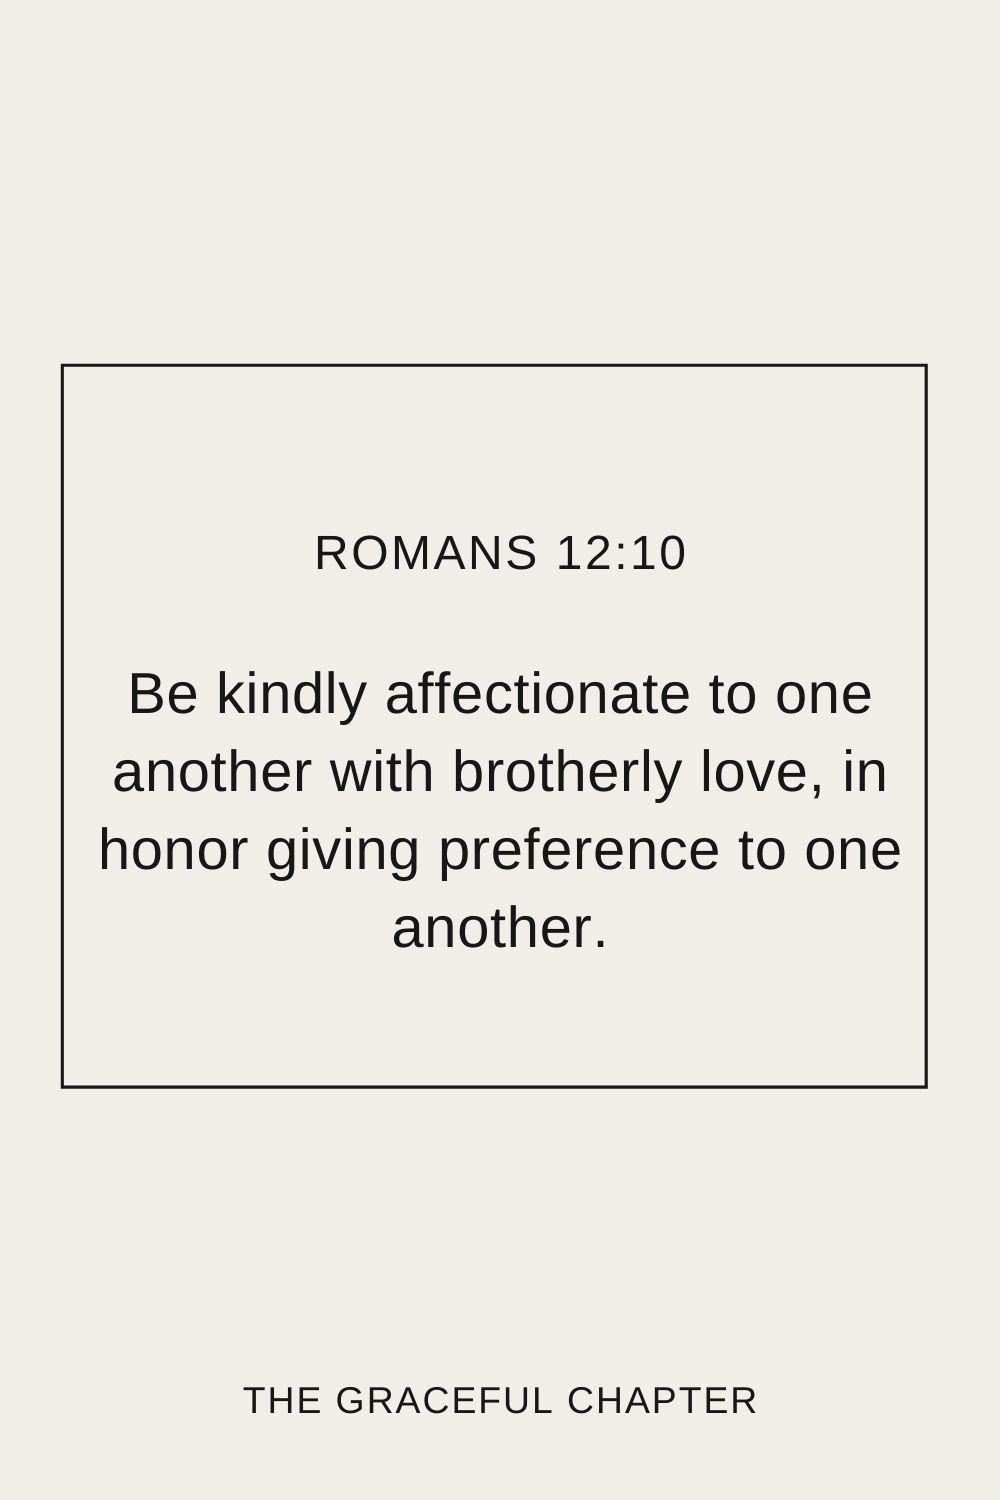 Be kindly affectionate to one another with brotherly love, in honor giving preference to one another; Romans 12:10